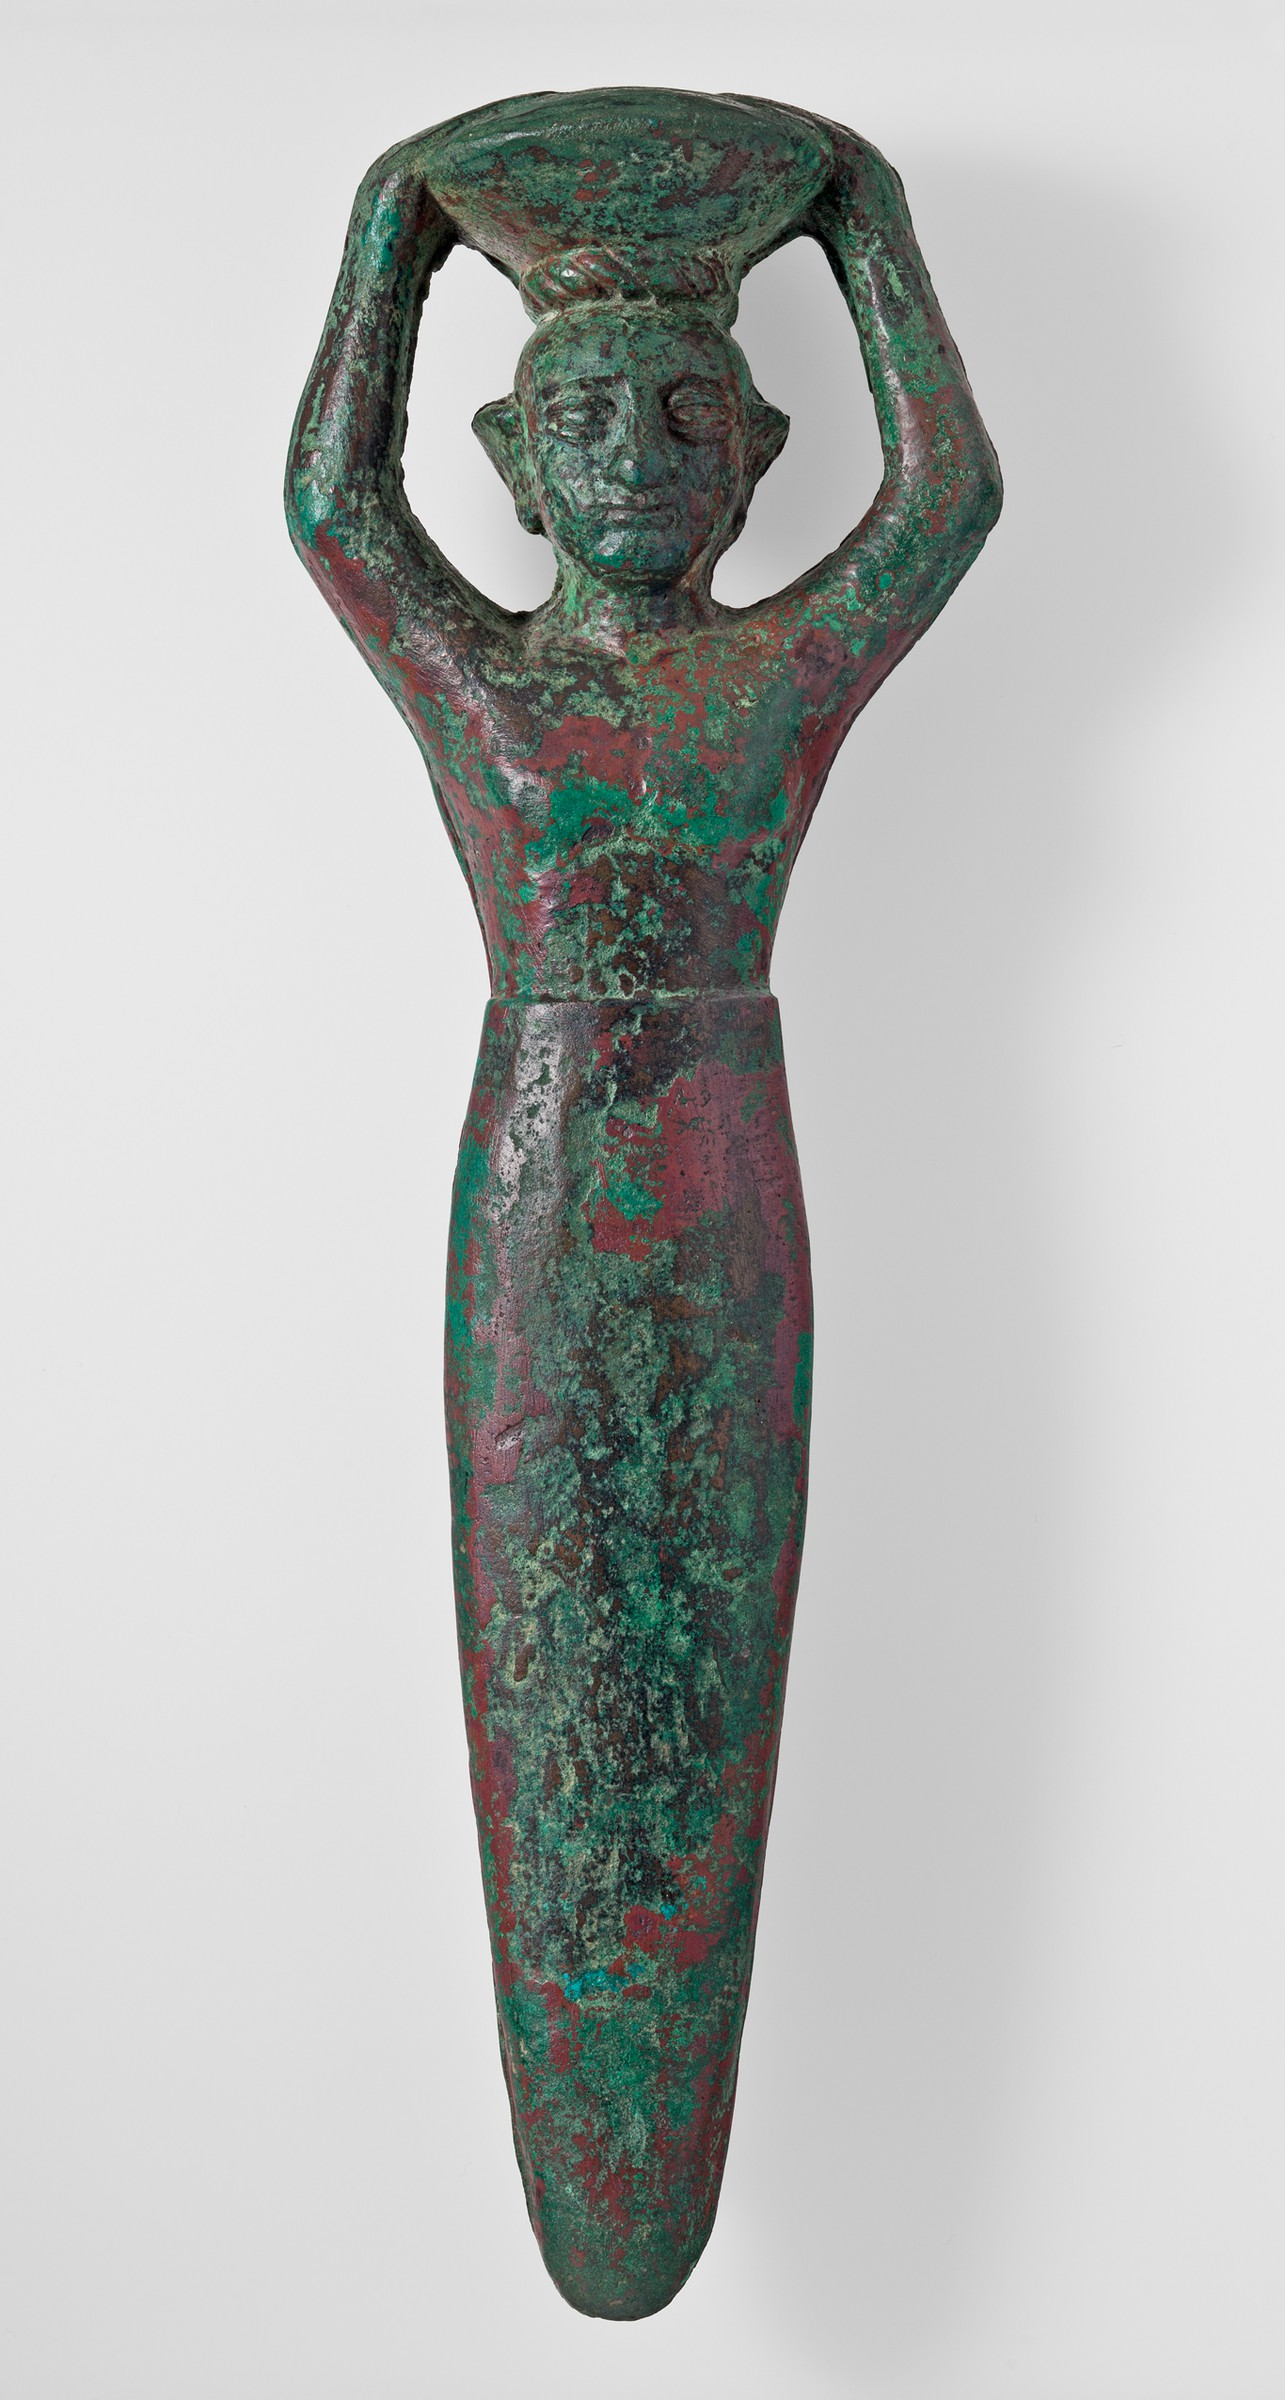 This copper figure carries a shallow basket on its head; both arms are raised to support the basket. The beardless man's upper body is naked, and the lower body takes the shape of a slightly flattened peg. The surface of the object is dark brown, with extensive patches of light green and dark red corrosion.